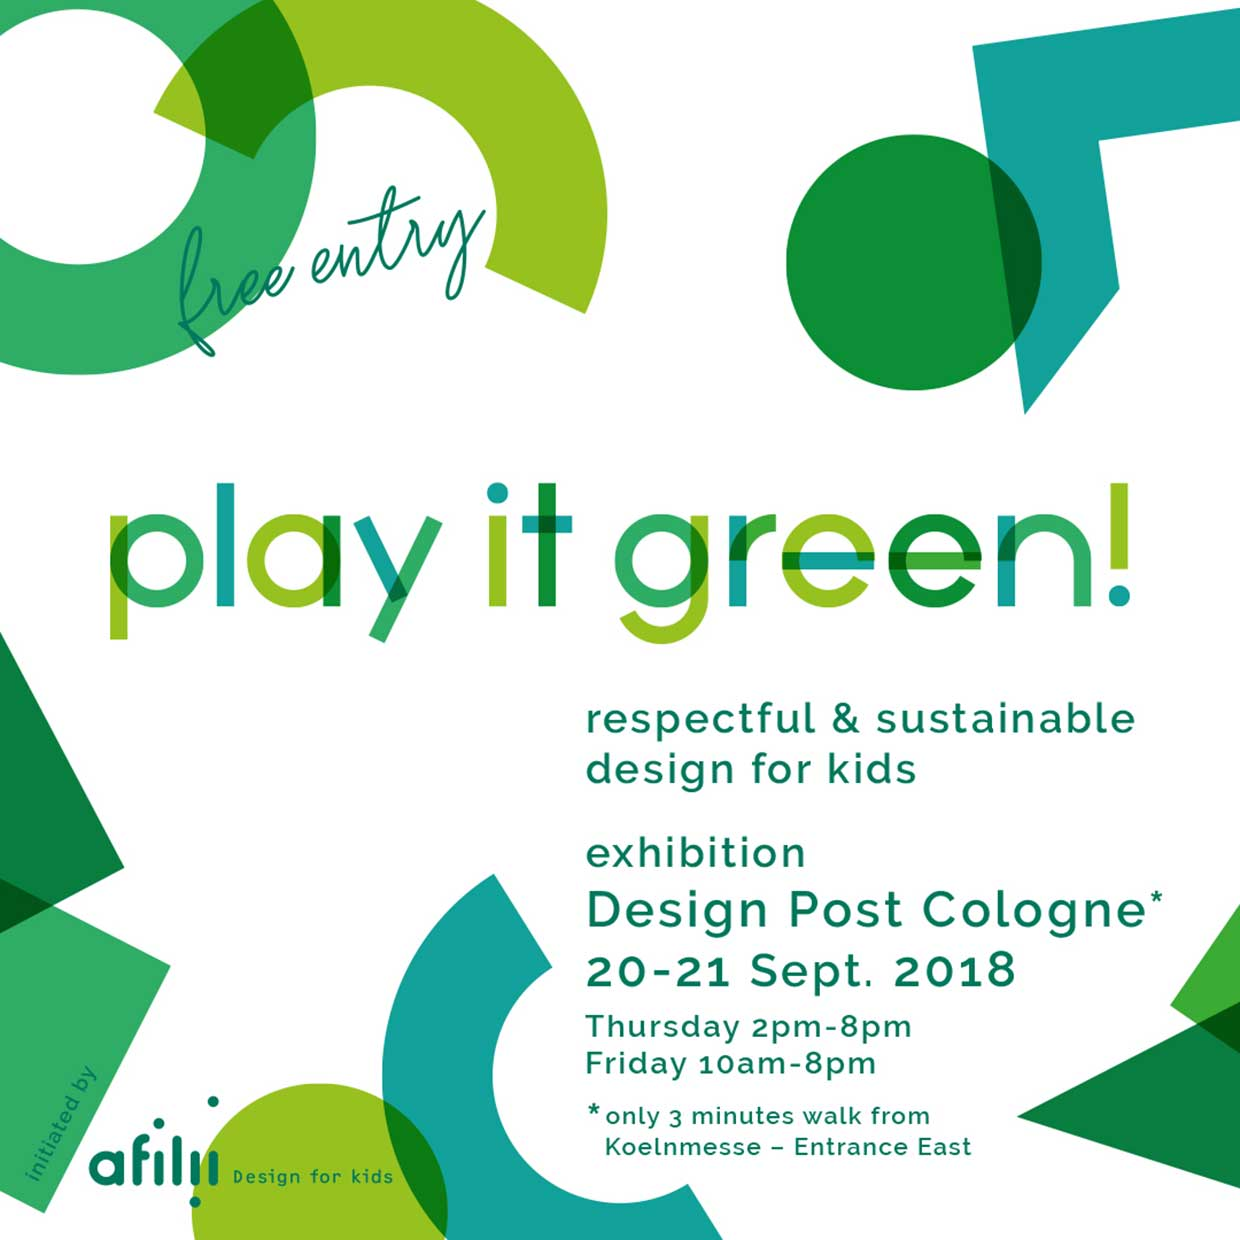 play it green respectful sustainable design for kids